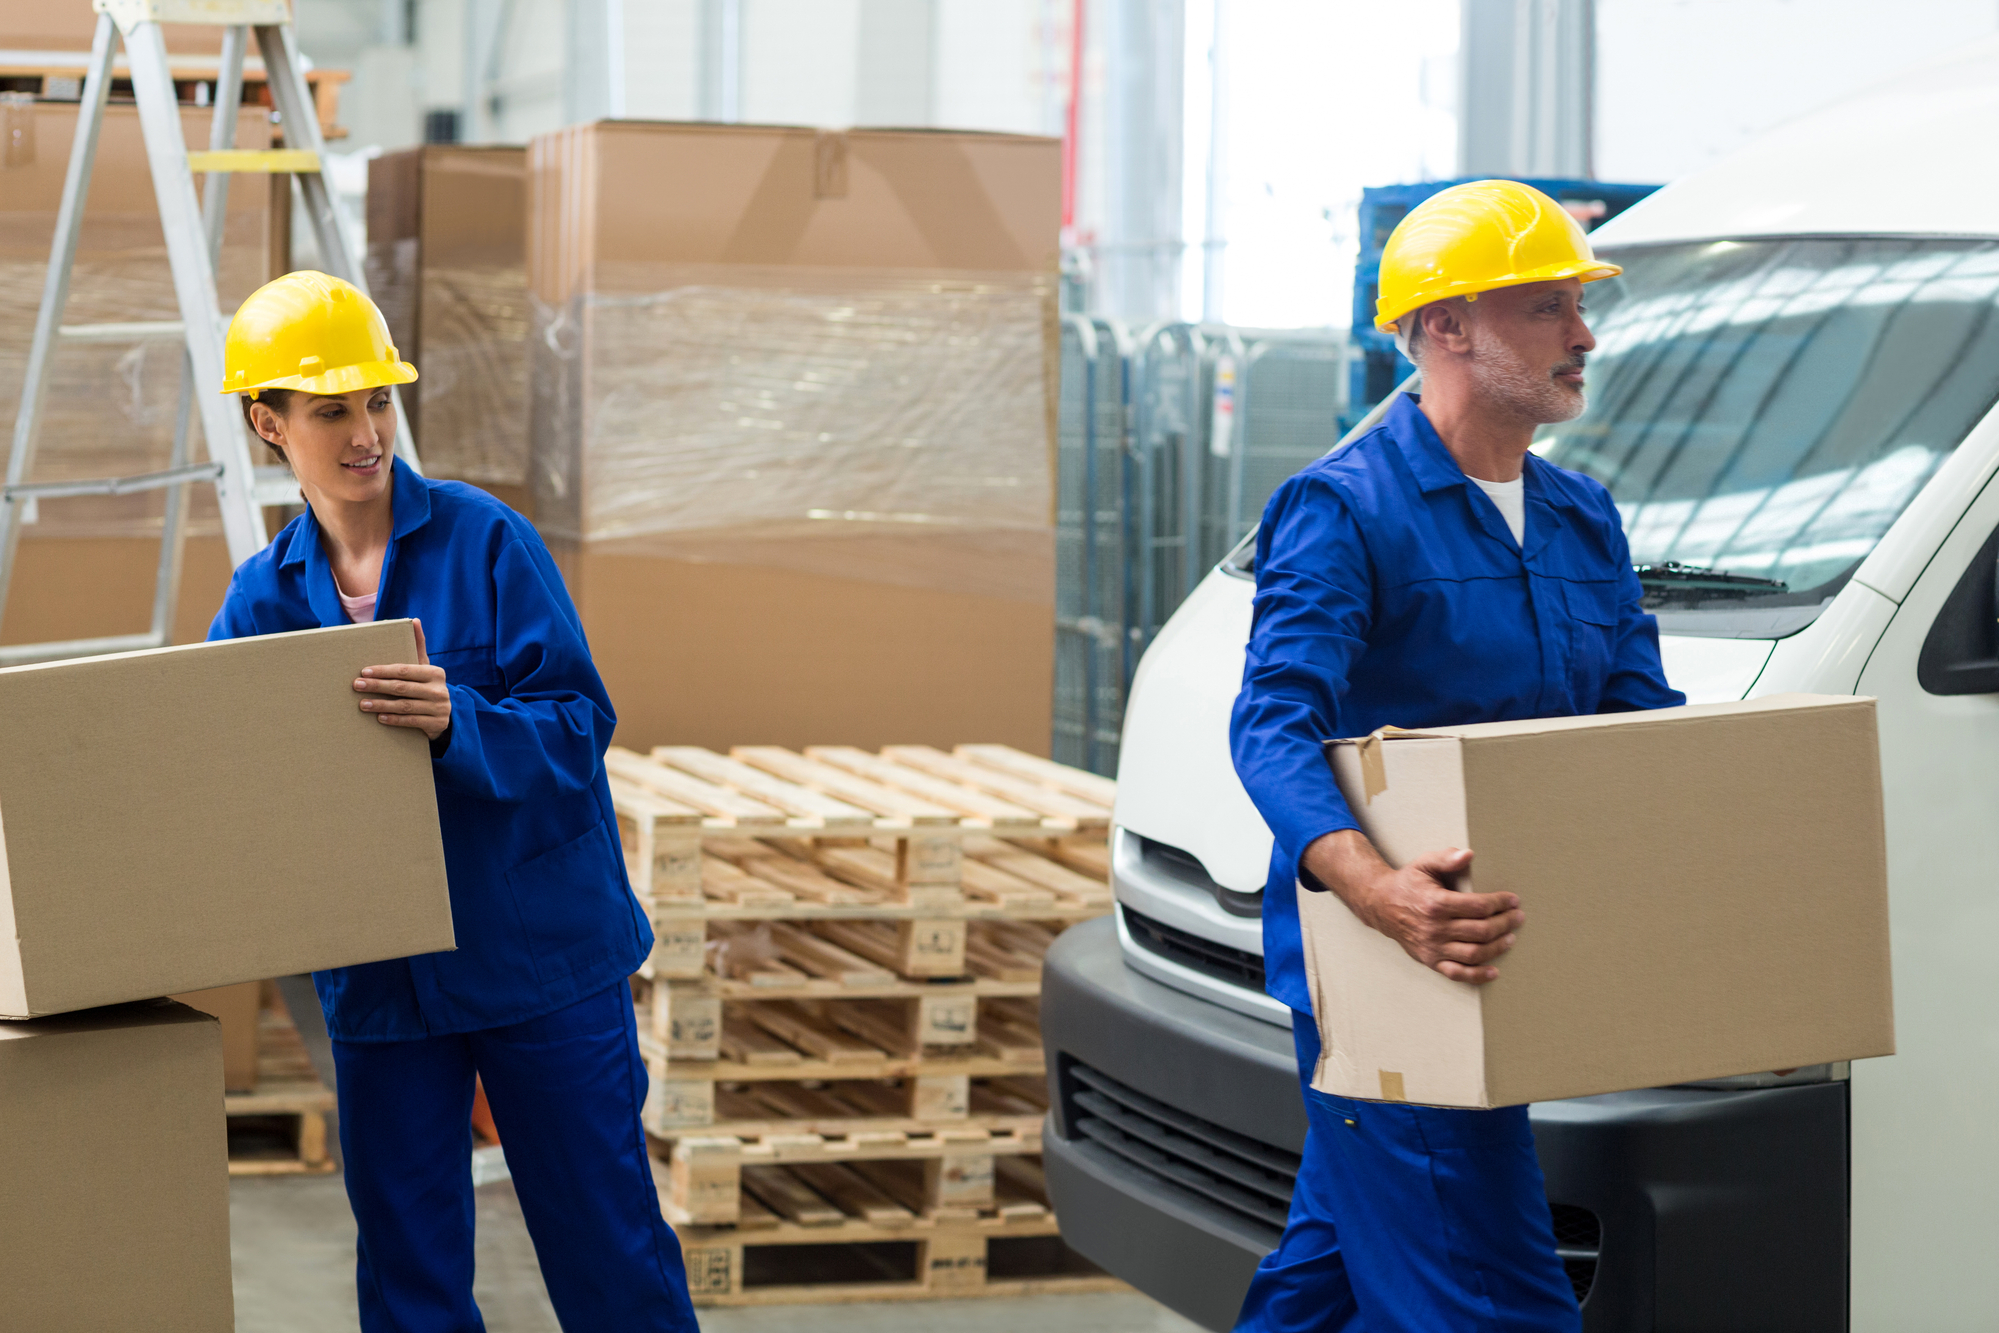 Two workers lift packages on the loading dock